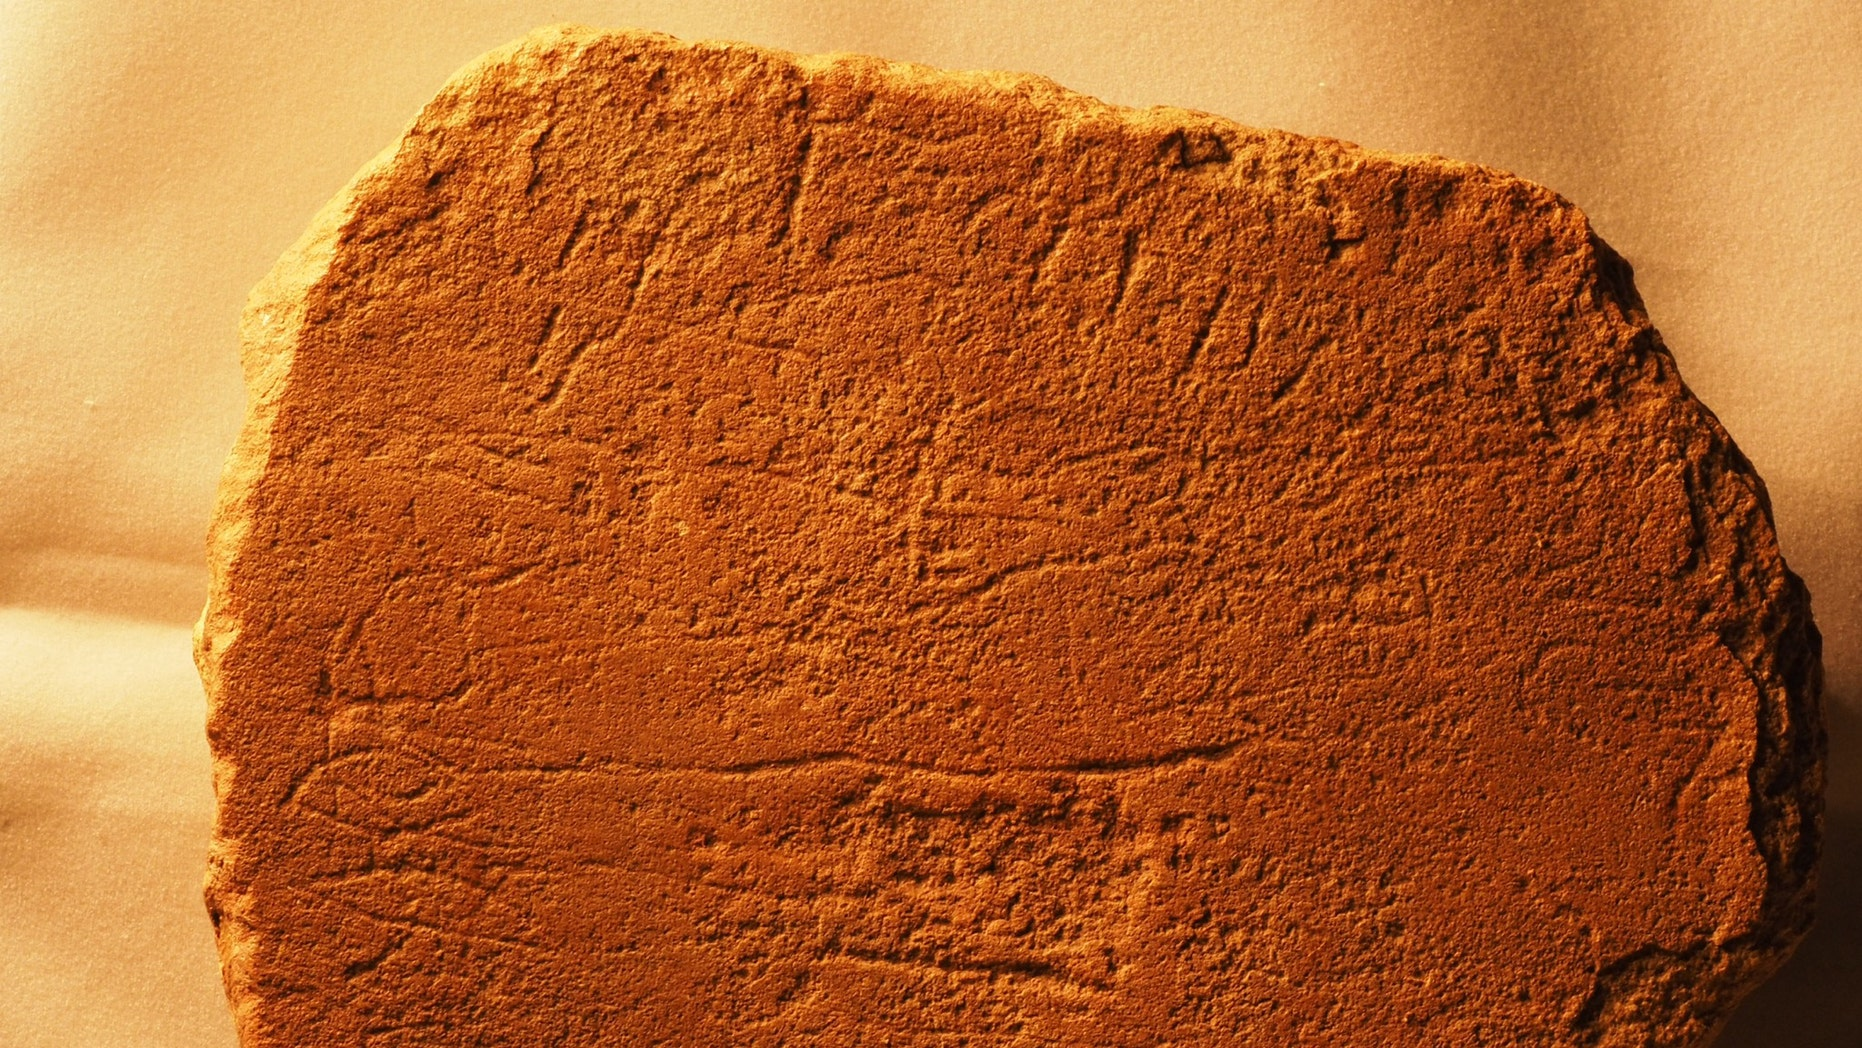 A photo of Sinai 375a, a stone slab from Egypt, which is now located in the Harvard Semitic Museum. This photo contains the name Ahisamach (Exodus 31:6) on the two horizontal lines. (Credit: Douglas Petrovich)